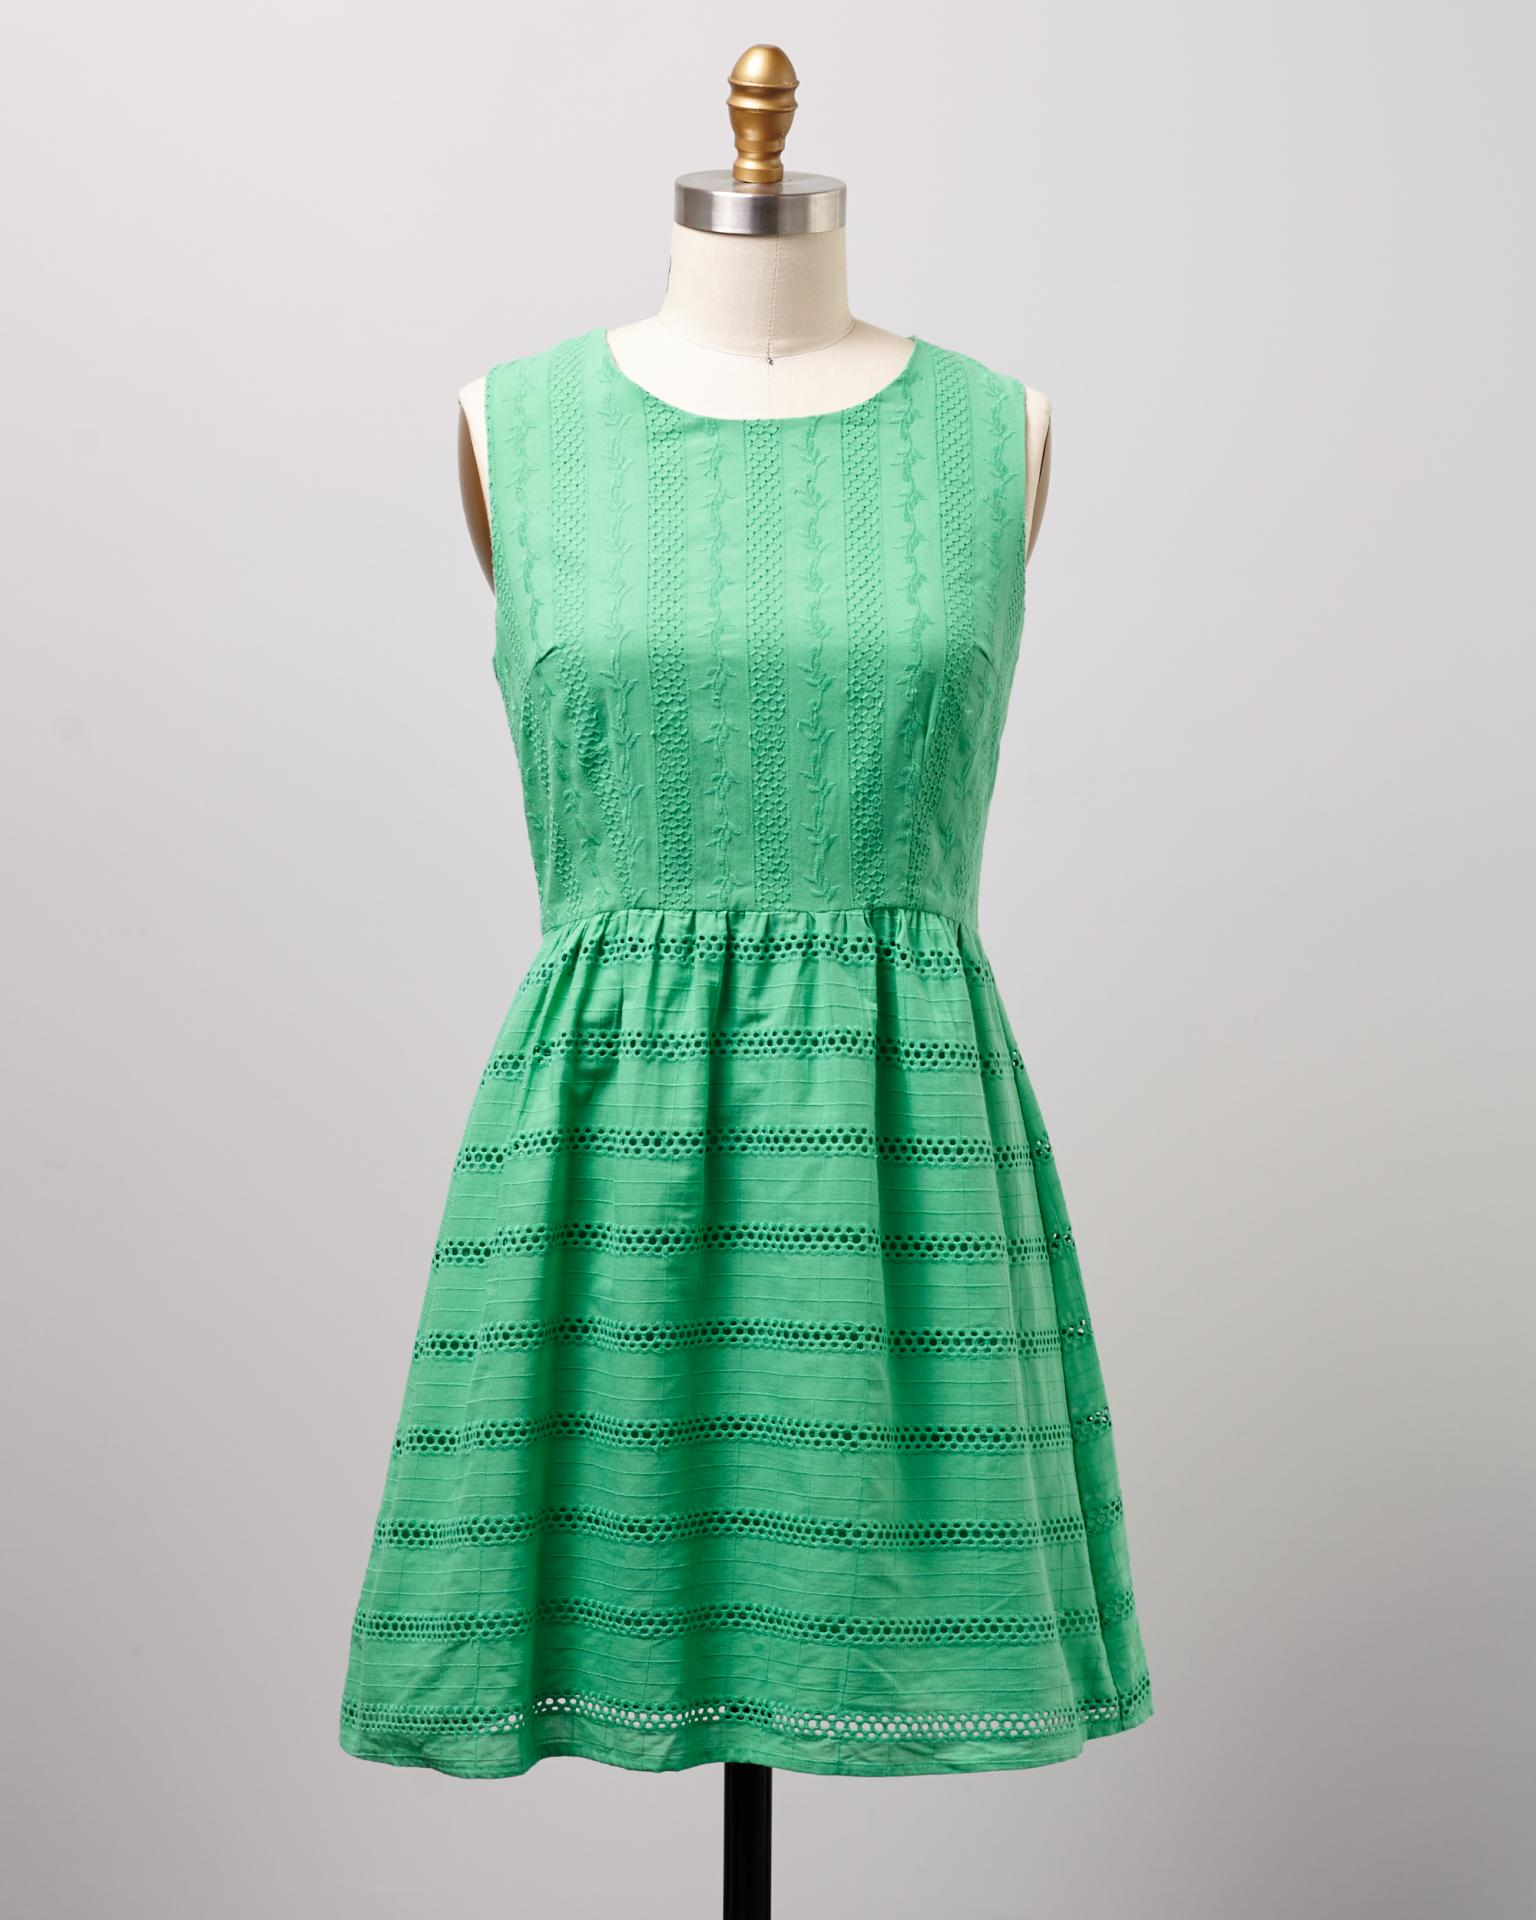 This gorgeous, sweet dress is a new-with-tags Modcloth find, but at an incredible consignment bargain find price! Snatch yours up now from this fantastic give-back shopping site before they're gone!